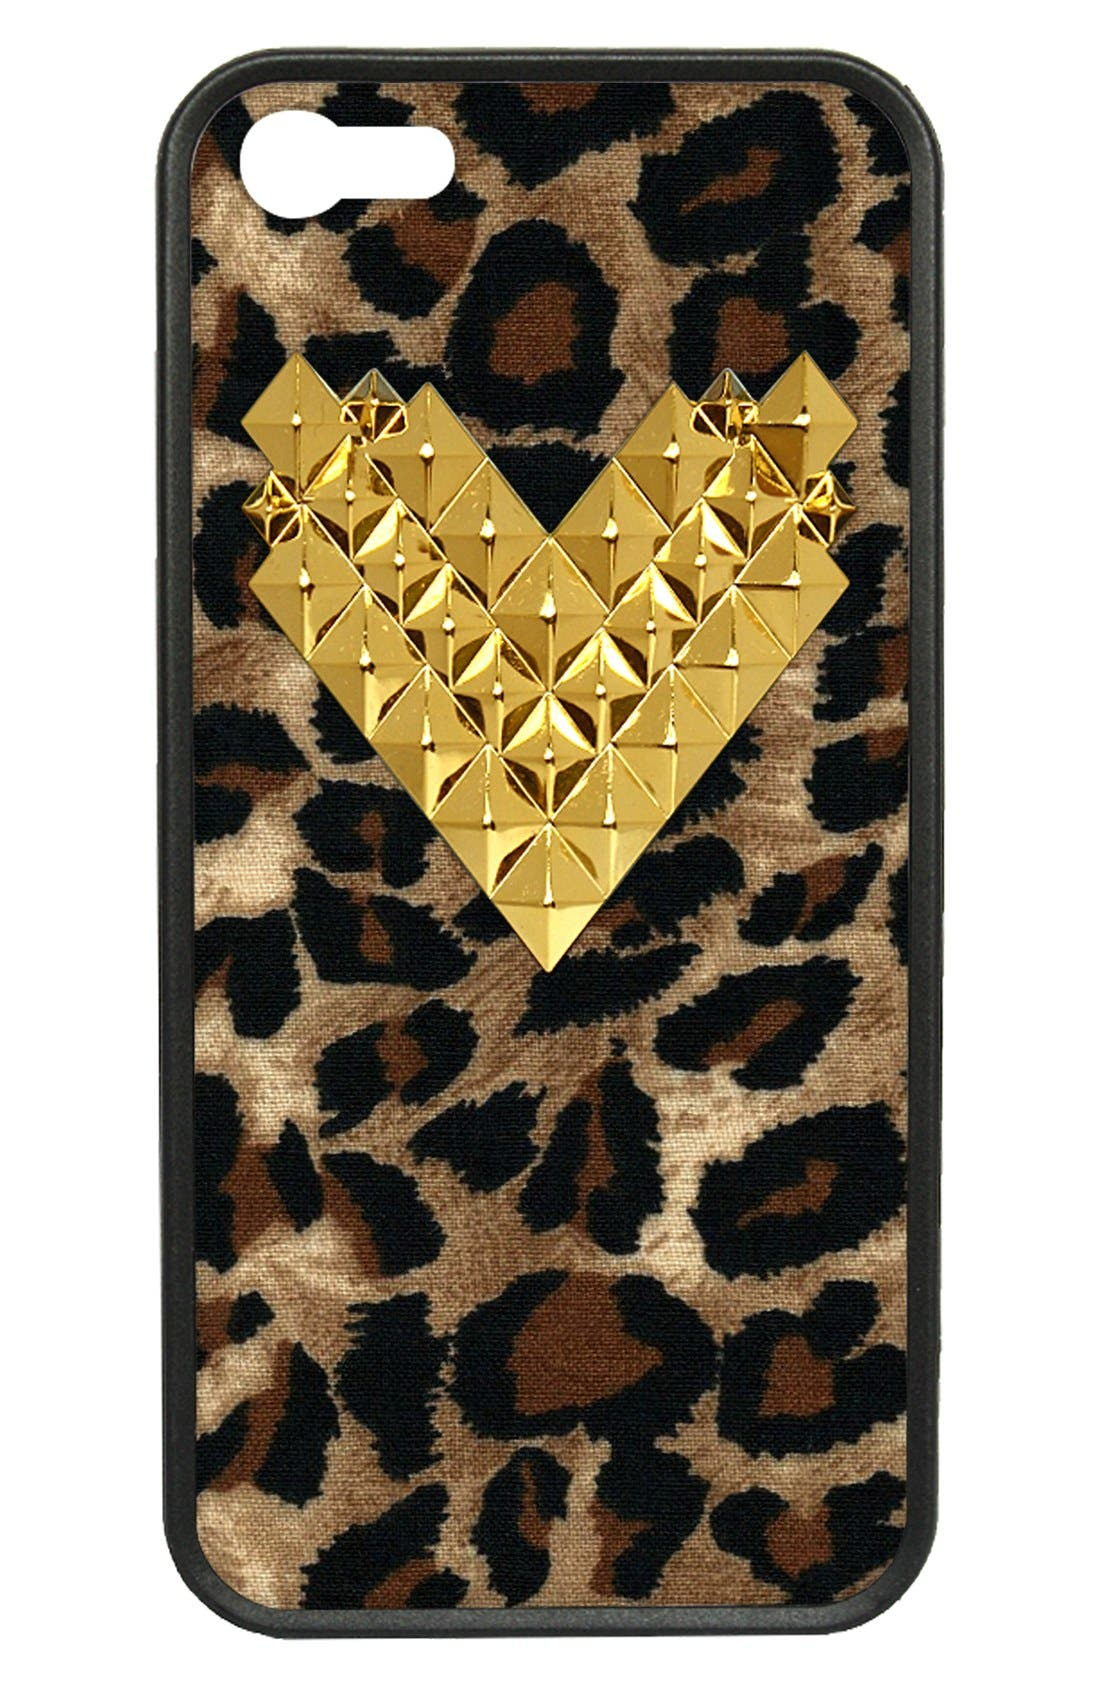 Alternate Image 1 Selected - wildflower 'Cheetah Gold Studded Heart' iPhone 5 &5s Case